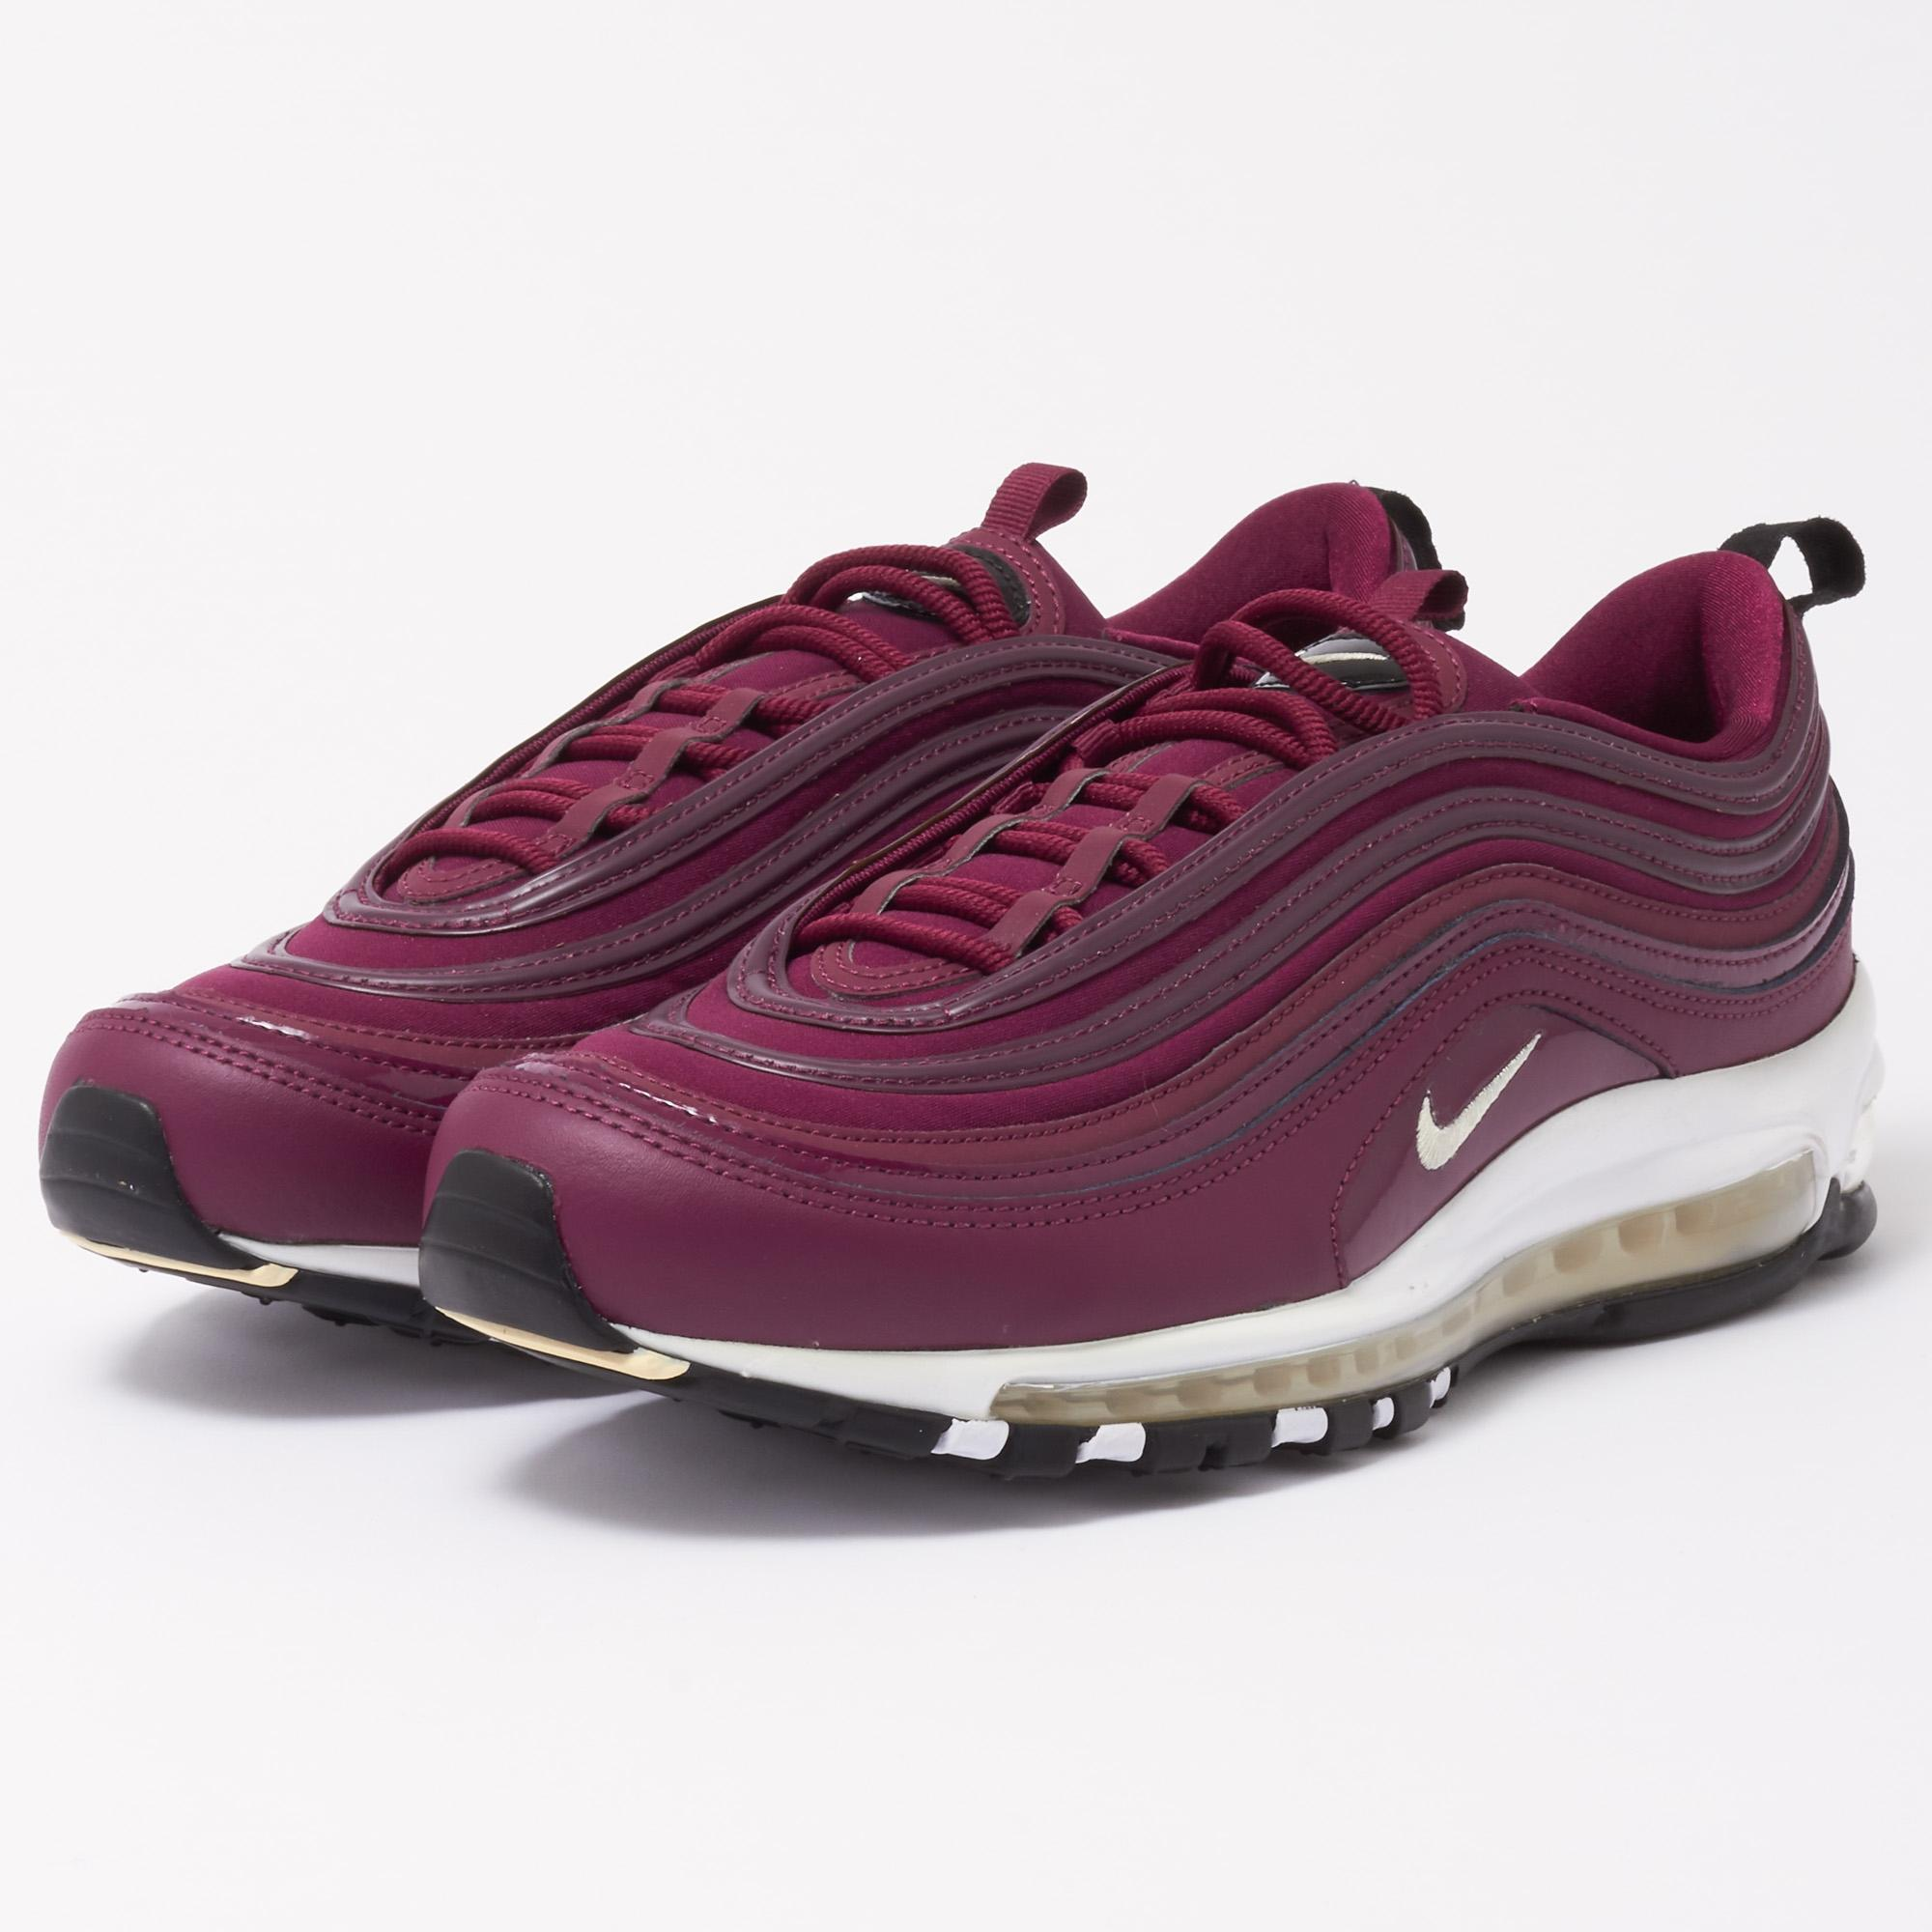 best sneakers a1a80 c1043 Max Prm Nike Lyst in 97 Purple Air Bordeaux aqEqw8I